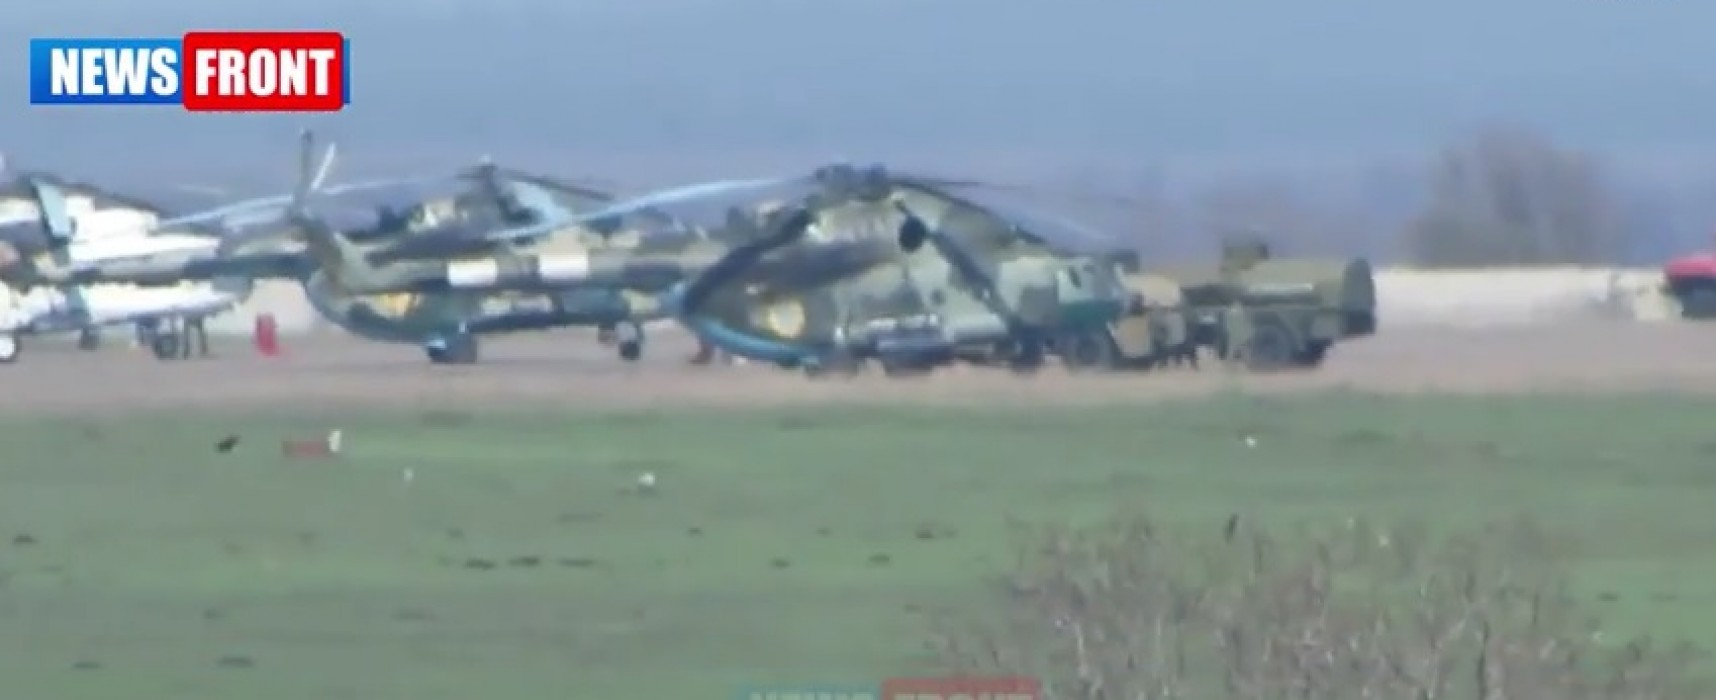 Video Fake: Ukrainian Military Machinery near Mariupol